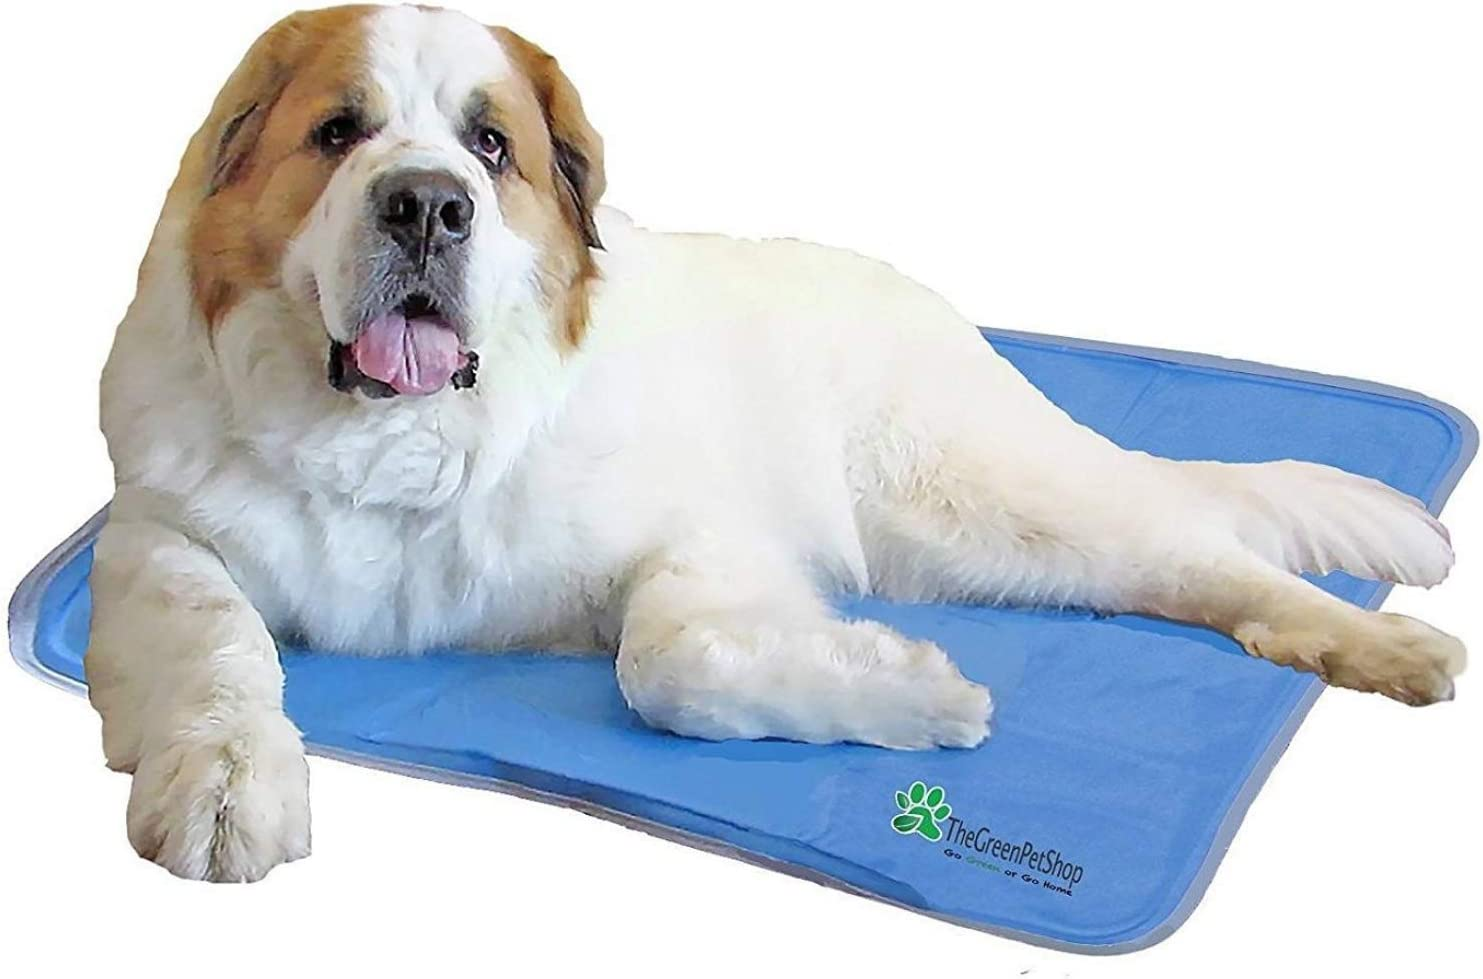 The Green Pet Shop Dog Cooling Mat Pressure Activated Gel Cooling Mat For Dogs This Pet Cooling Mat Keeps Dogs And Cats Comfortable All Summer